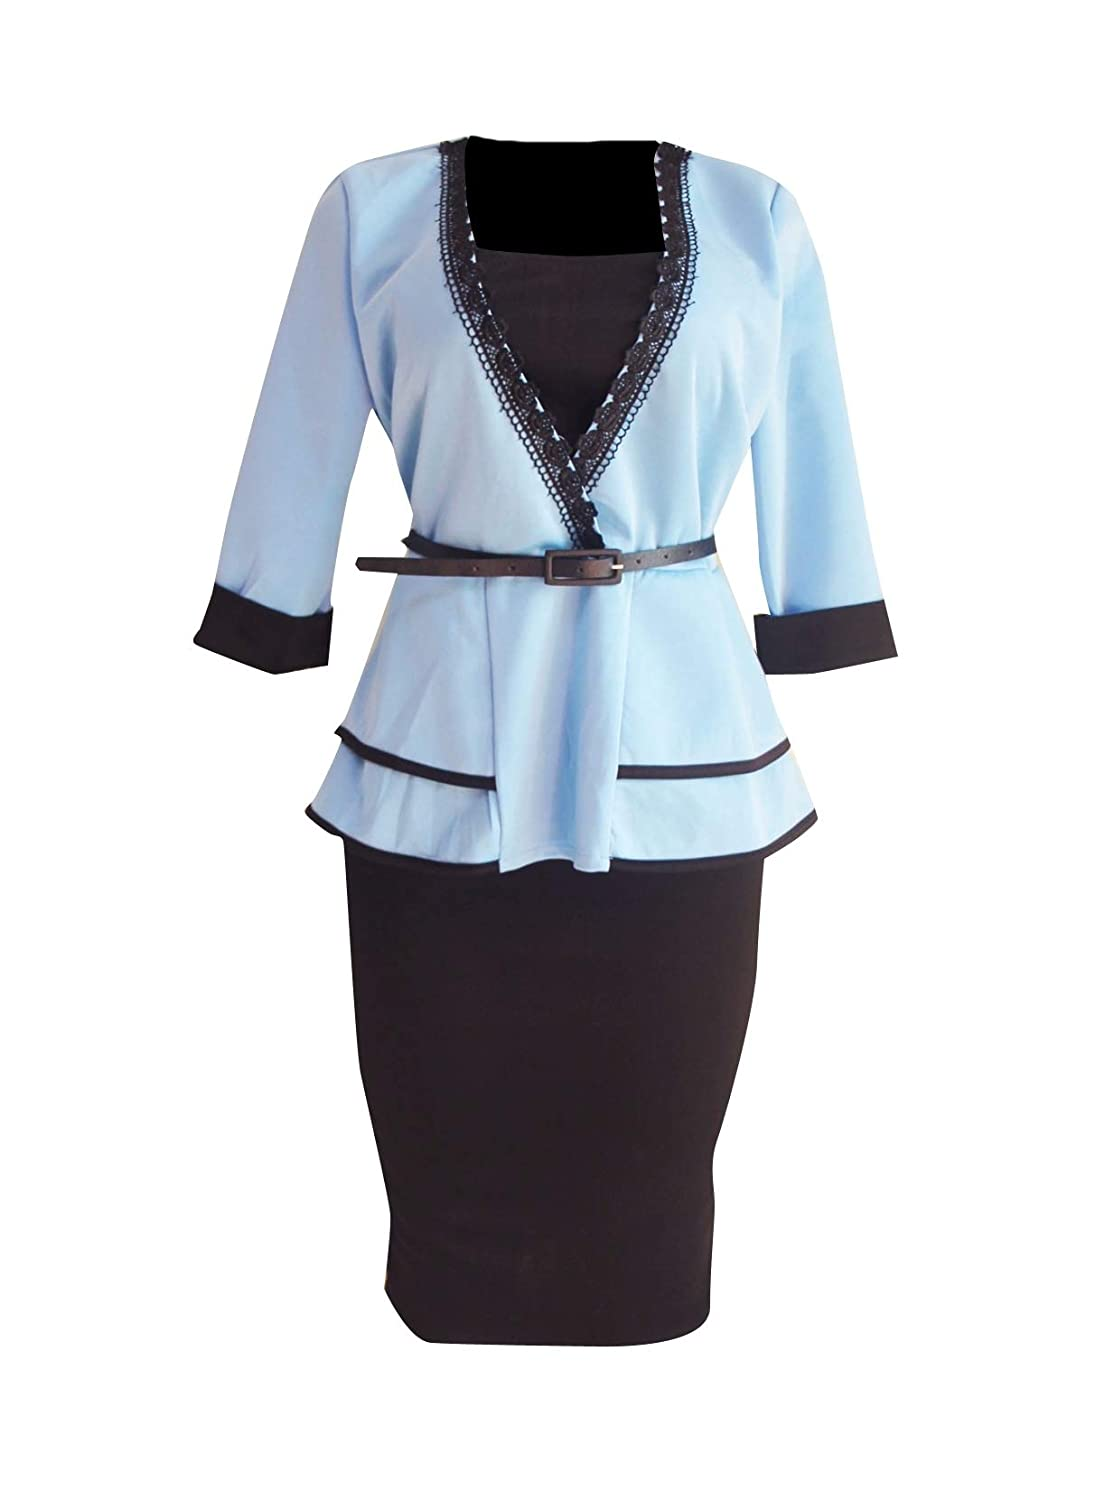 ROHEP Women Business Plus-Size Belt OL Office Shirt Jacket Skirt Suit